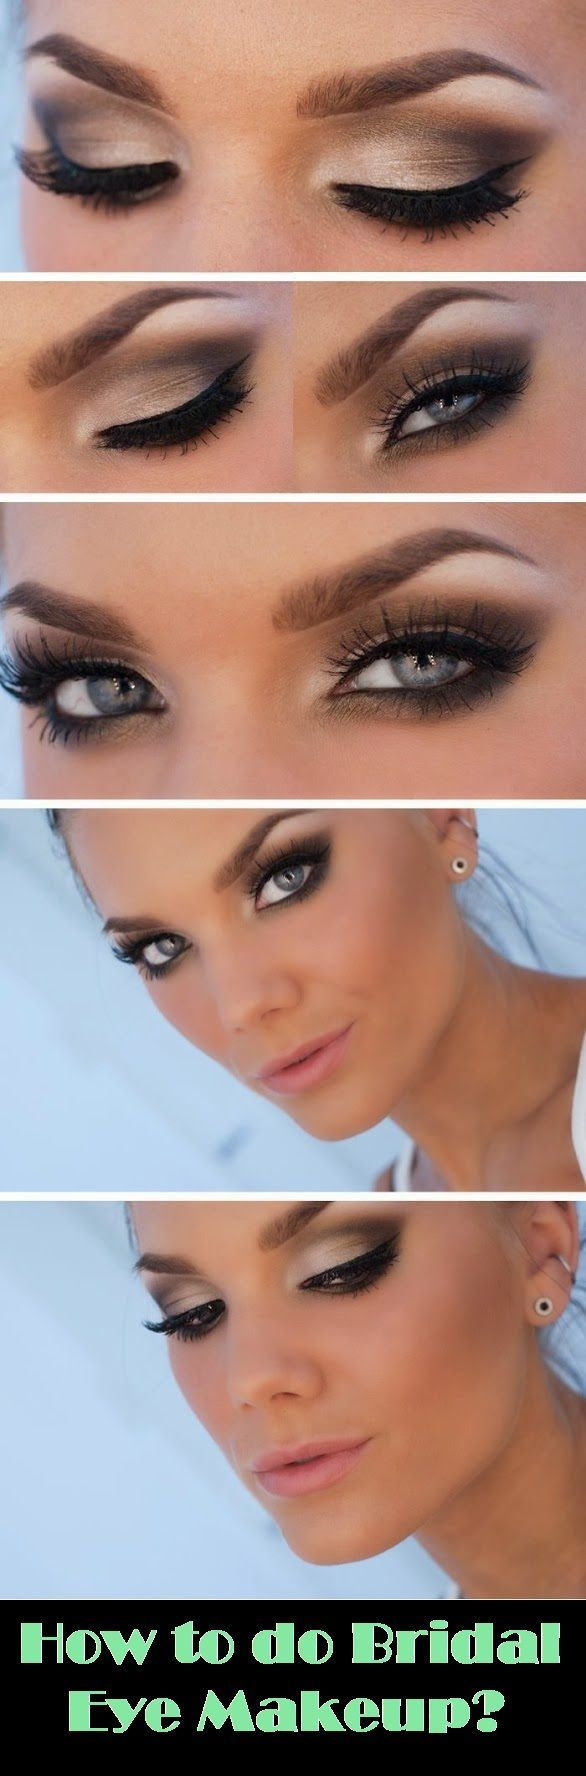 www.youniqueproducts.com/products/index?psid=196626 shop here and get the best make up! Seriously, I'm in love!!!